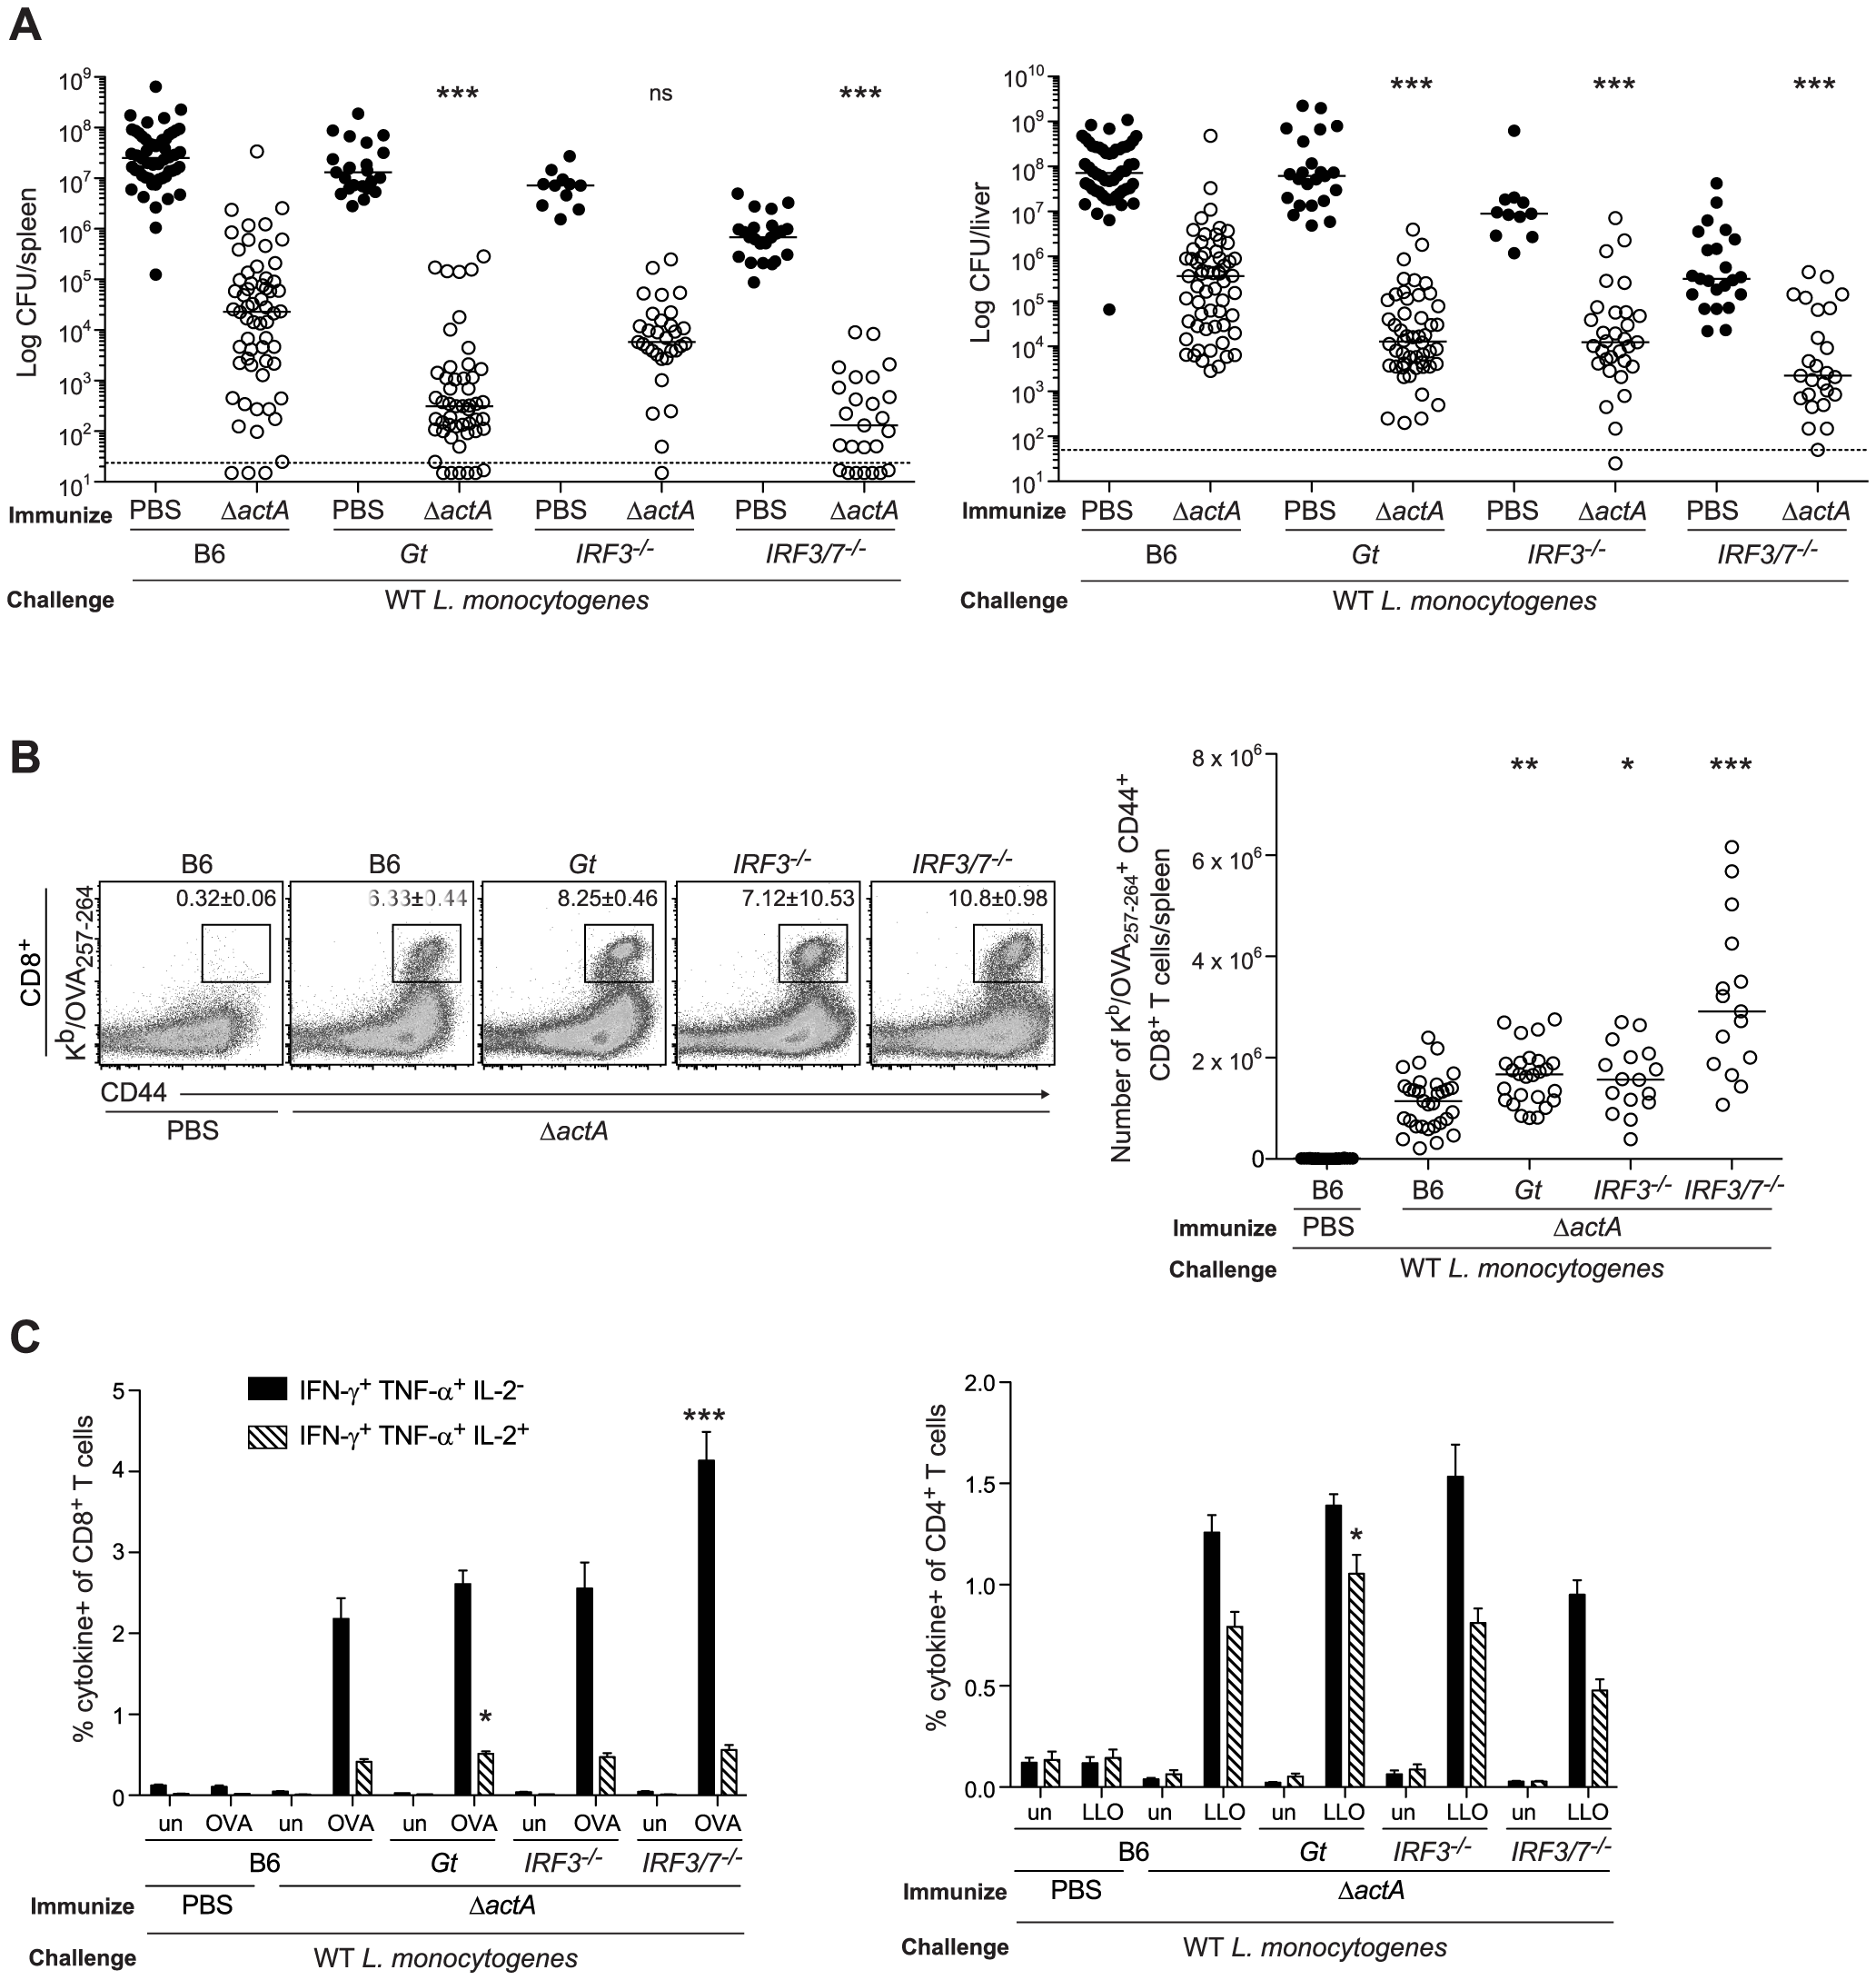 Mice lacking the STING signaling pathway generate a protective adaptive immune response following <i>L. monocytogenes</i> reinfection.